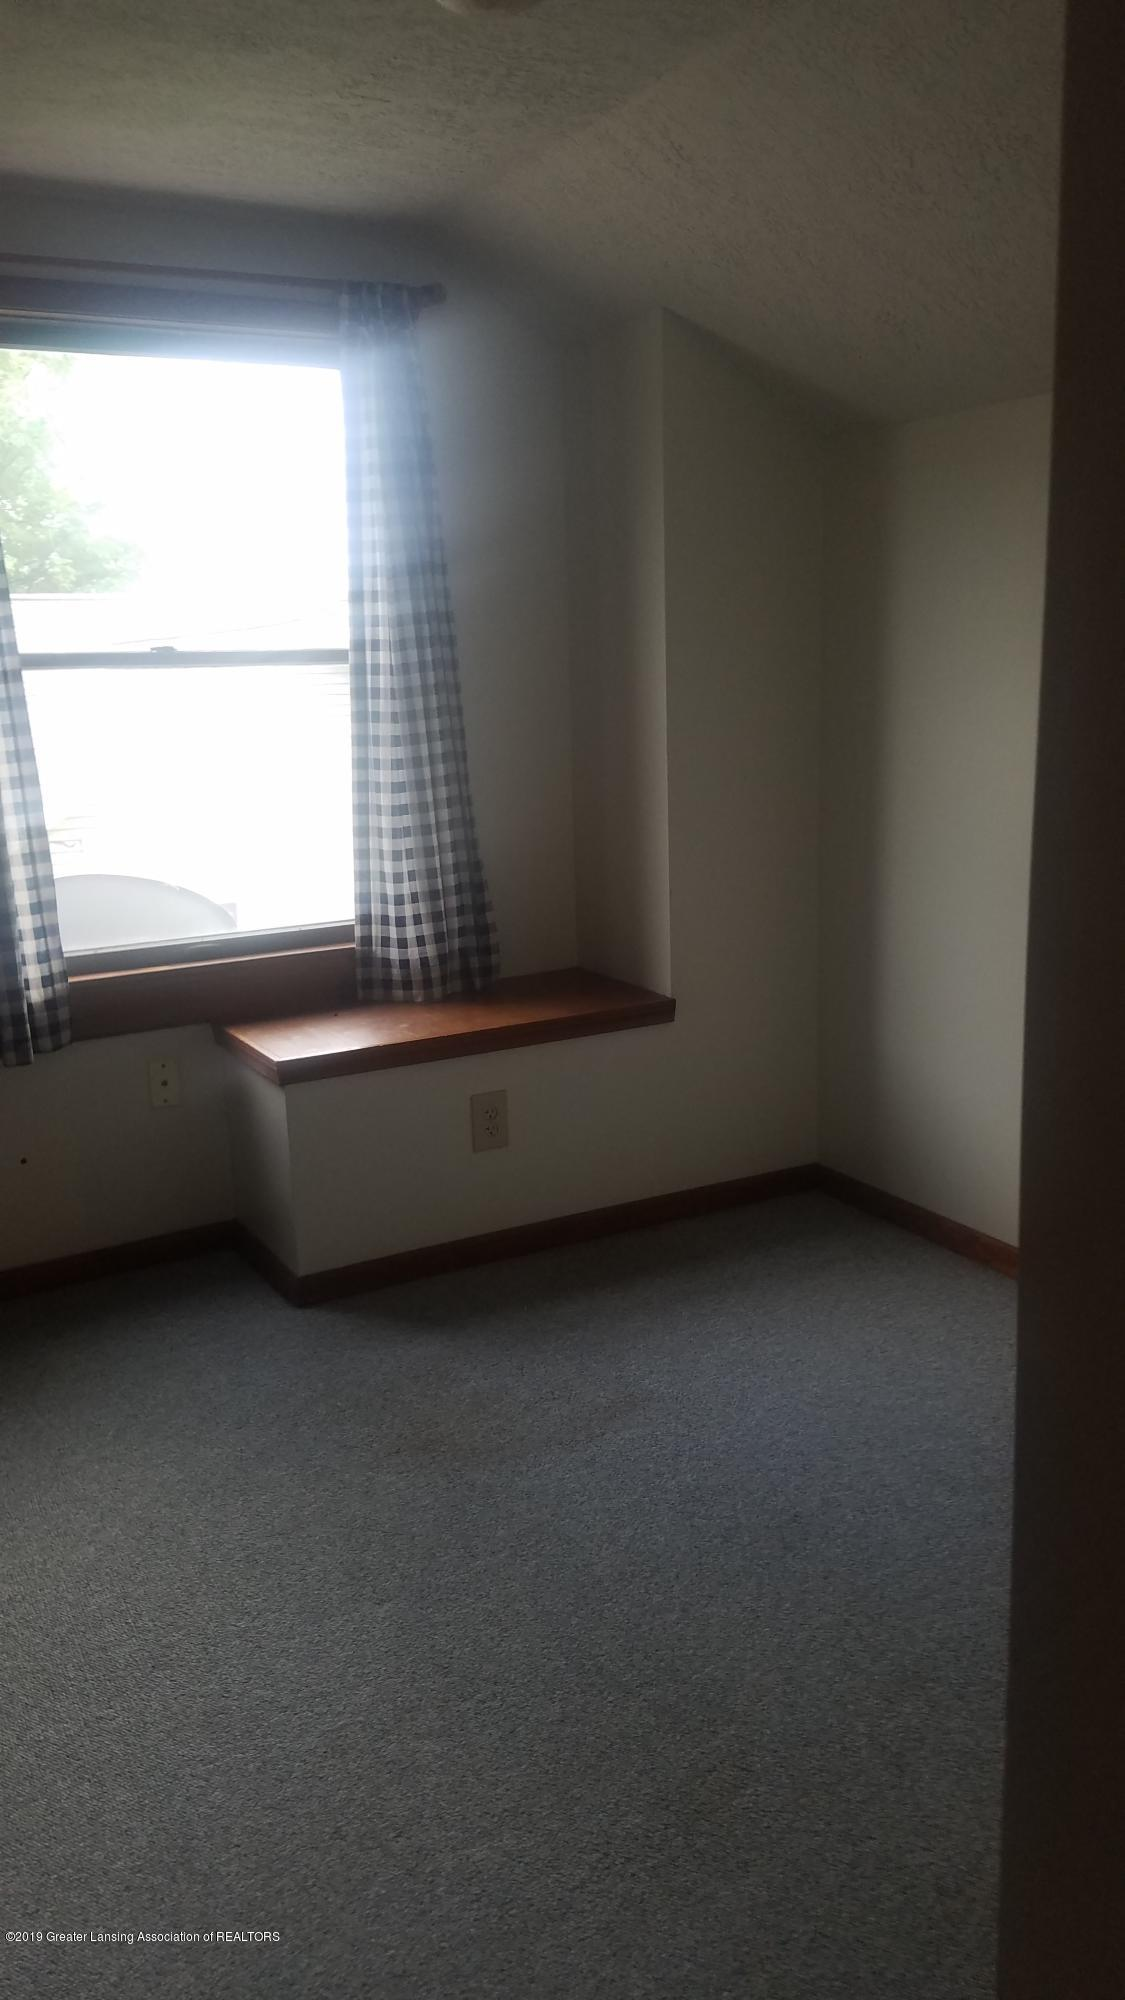 9642 Marshall Rd - BEDROOM - 20